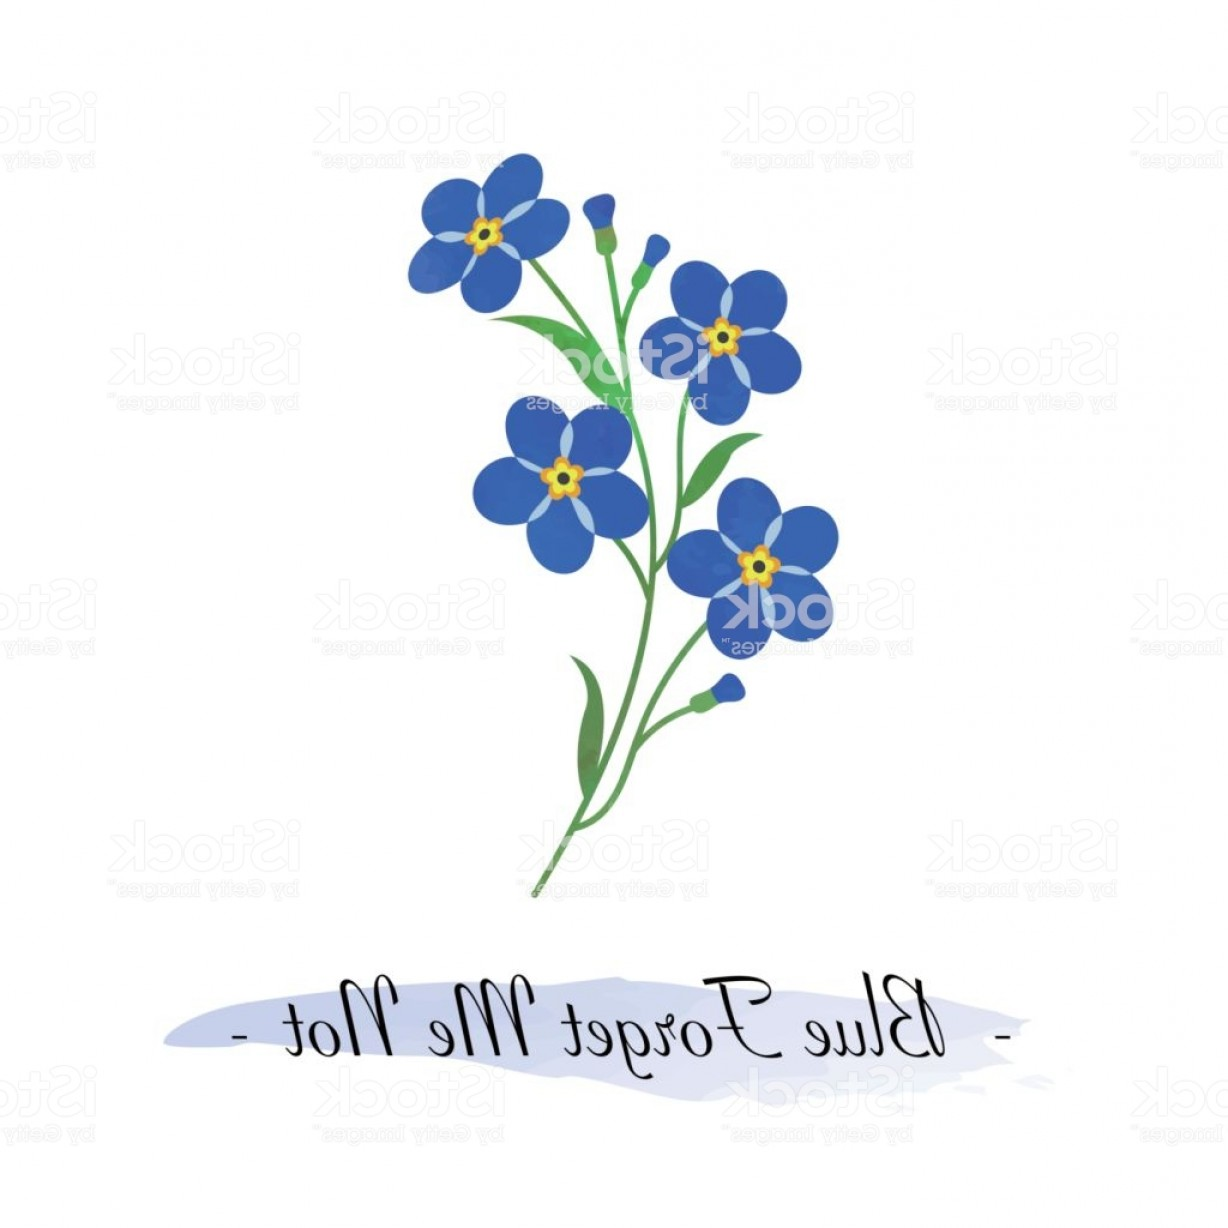 Get For Me Not Flower Watercolor Vector Art: Colorful Watercolor Texture Vector Botanic Garden Flower Blue Forget Me Not Gm